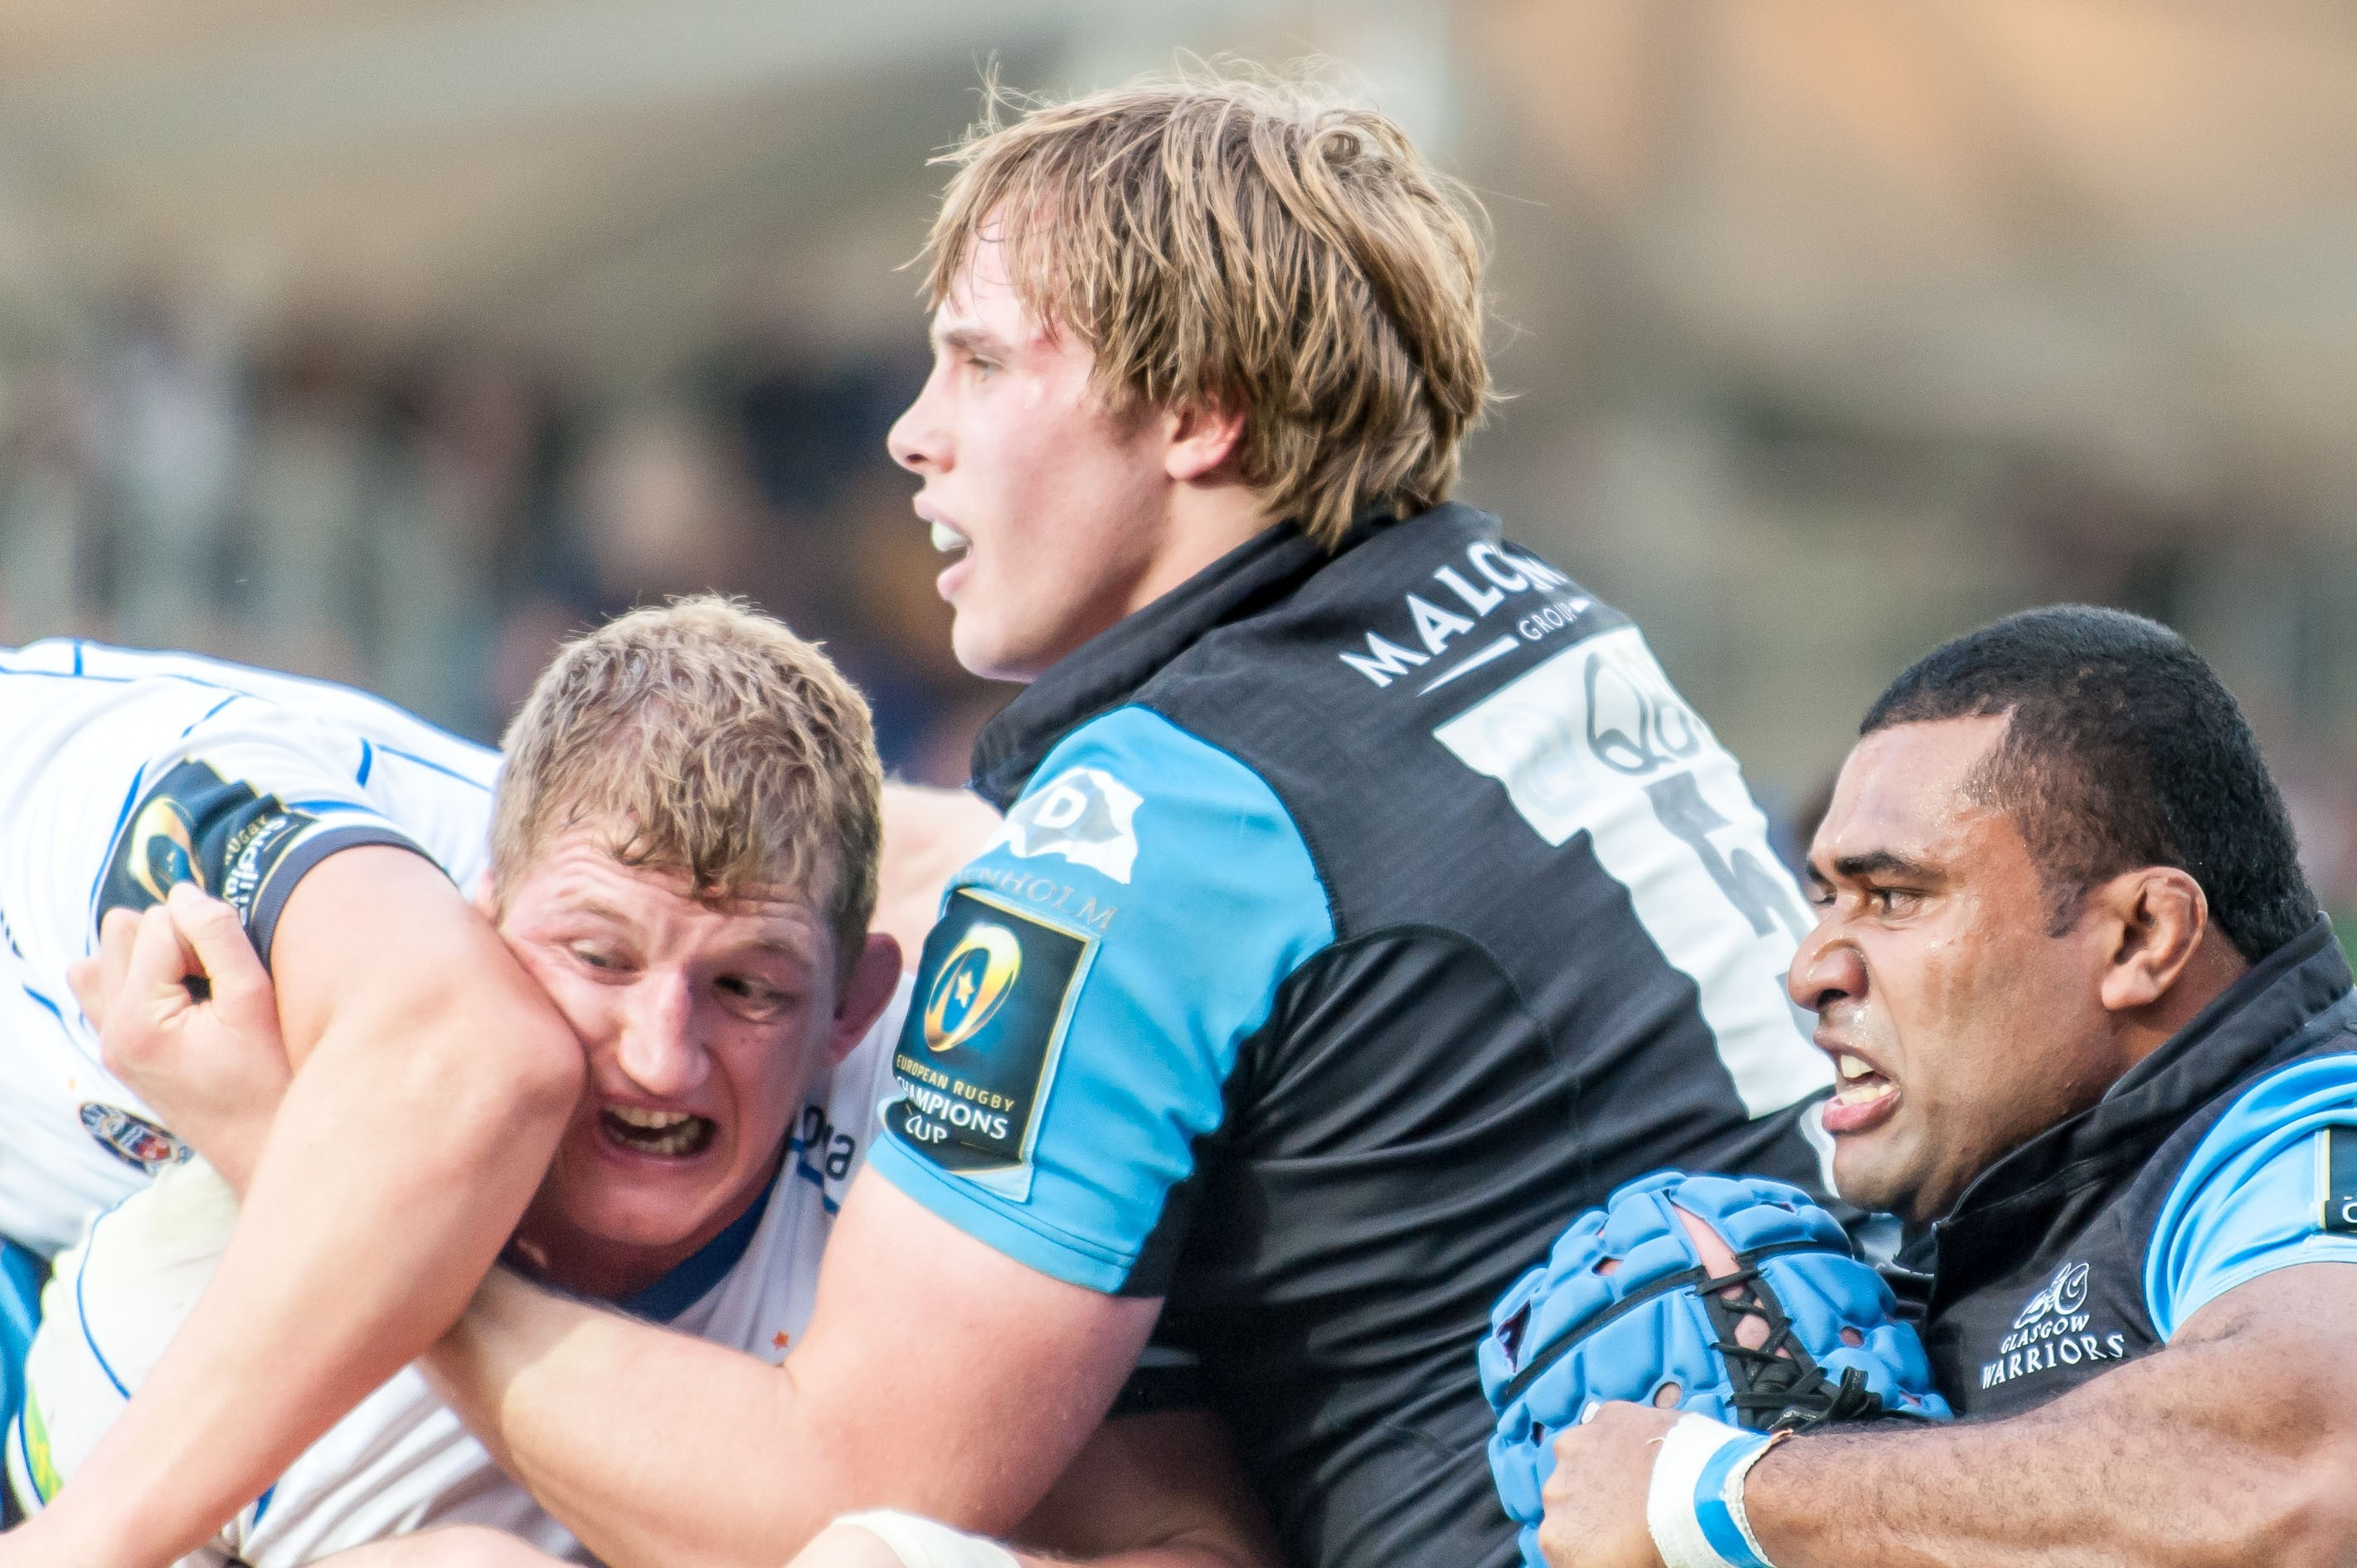 Jonny Gray took a further step forward as captain and player in Glasgow's famous win in Paris.